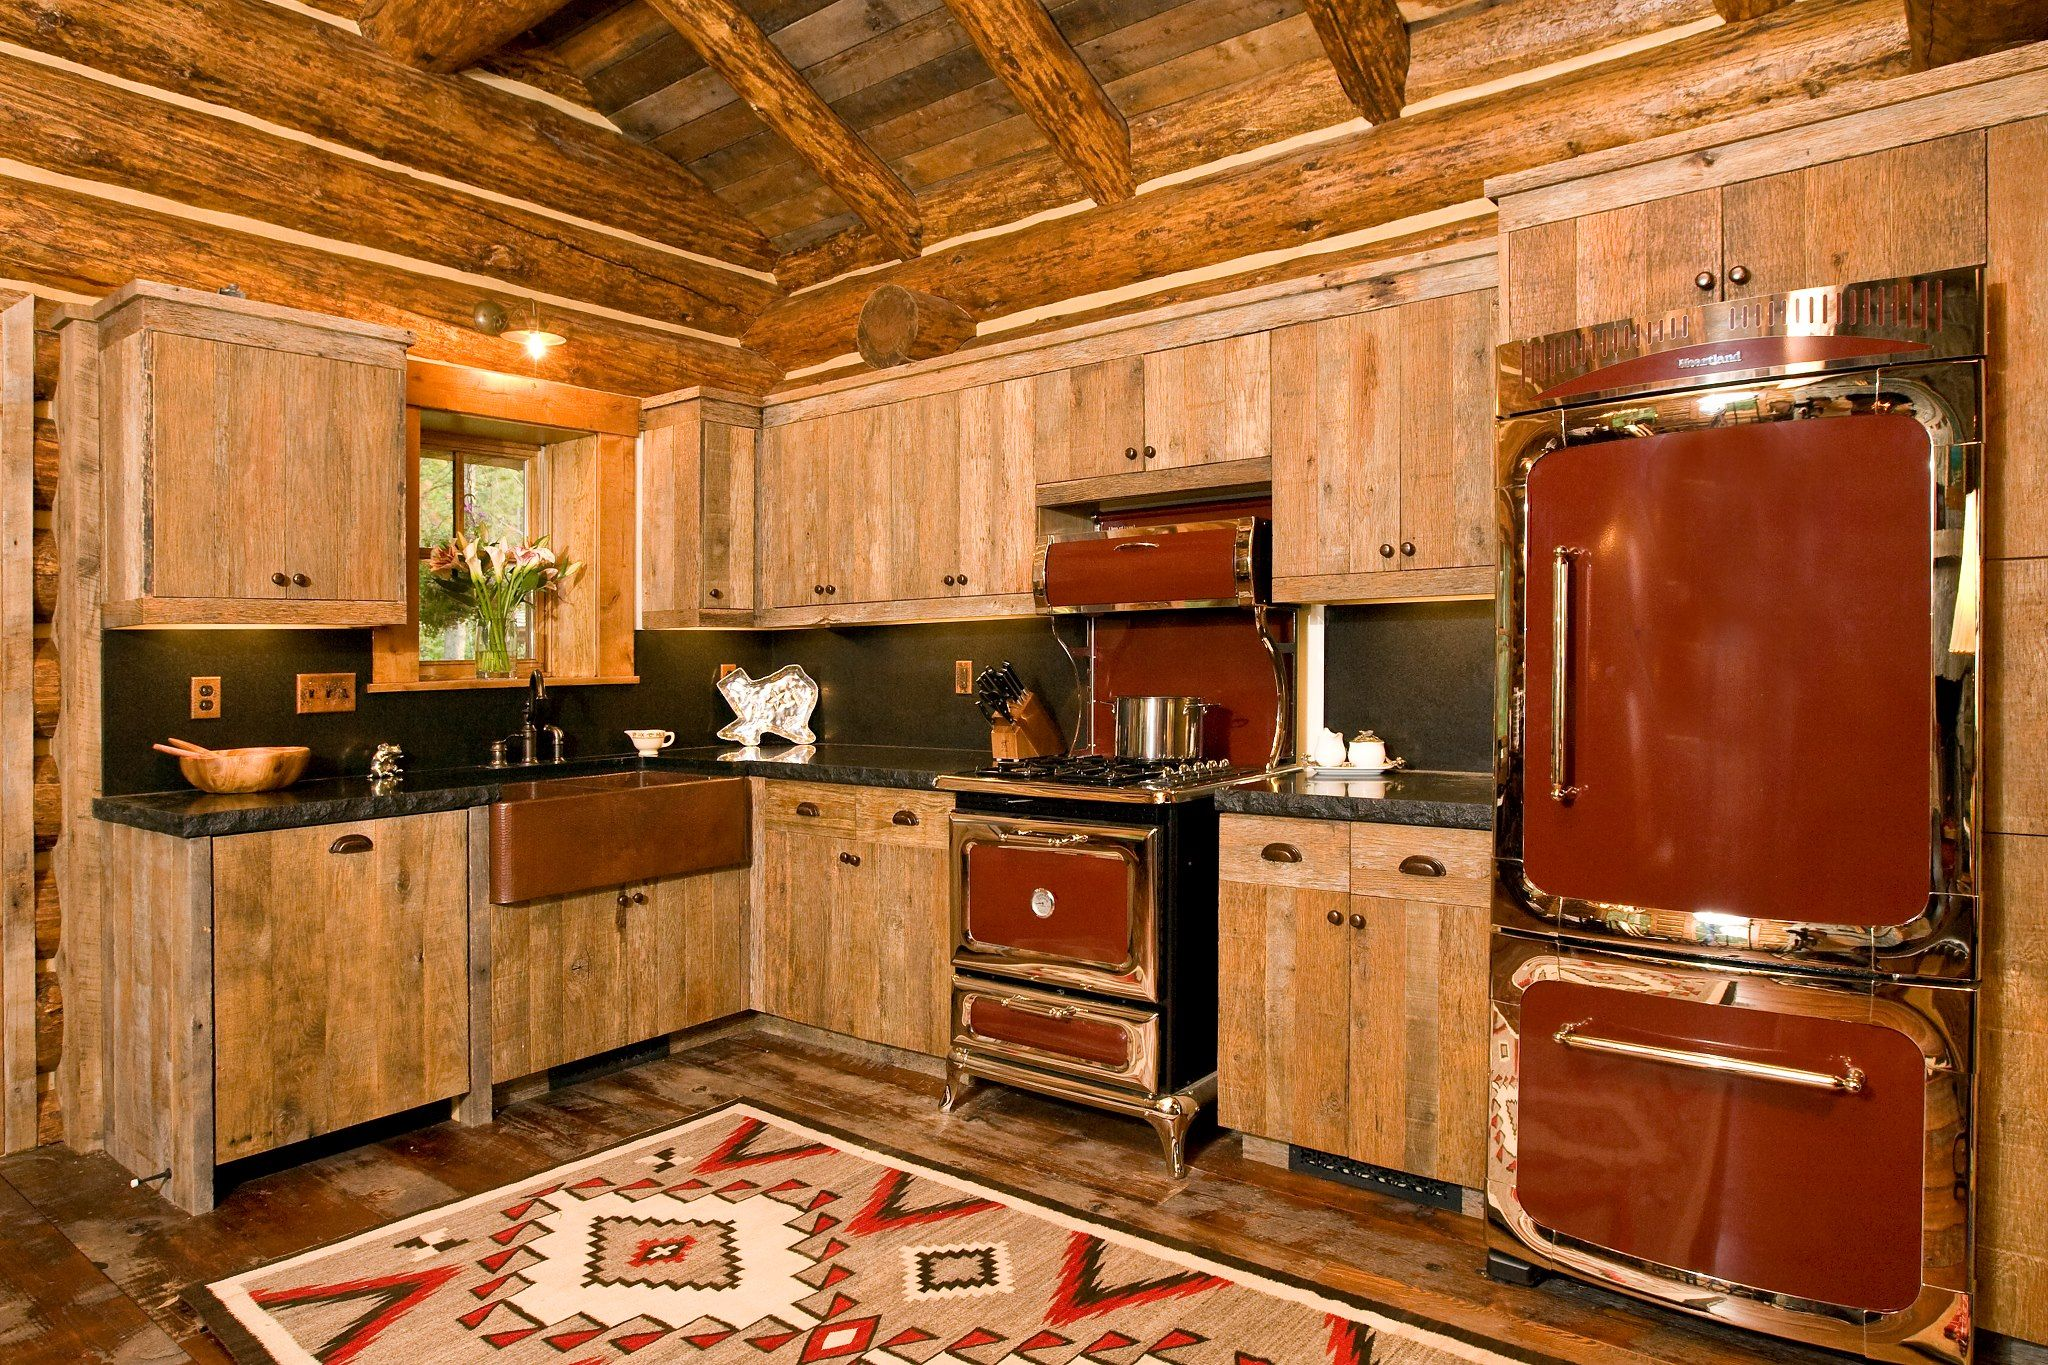 Coolest Kitchen I Have Ever Seen Wood Slat Cabinets And Retro Appliances I Would Change The Co Log Cabin Kitchens Rustic Cabin Kitchens Rustic Kitchen Design